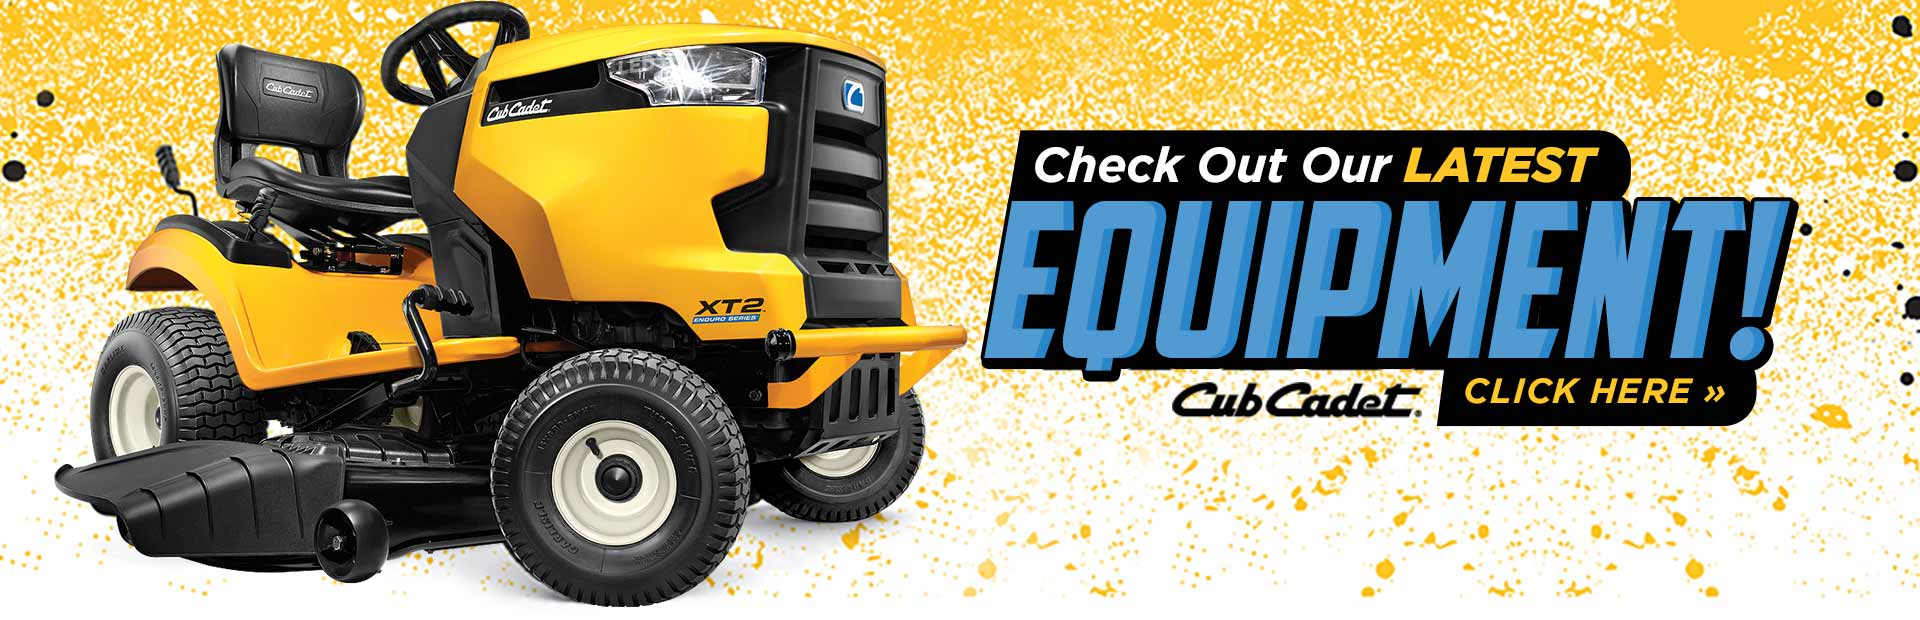 View our latest Cub Cadet equipment!